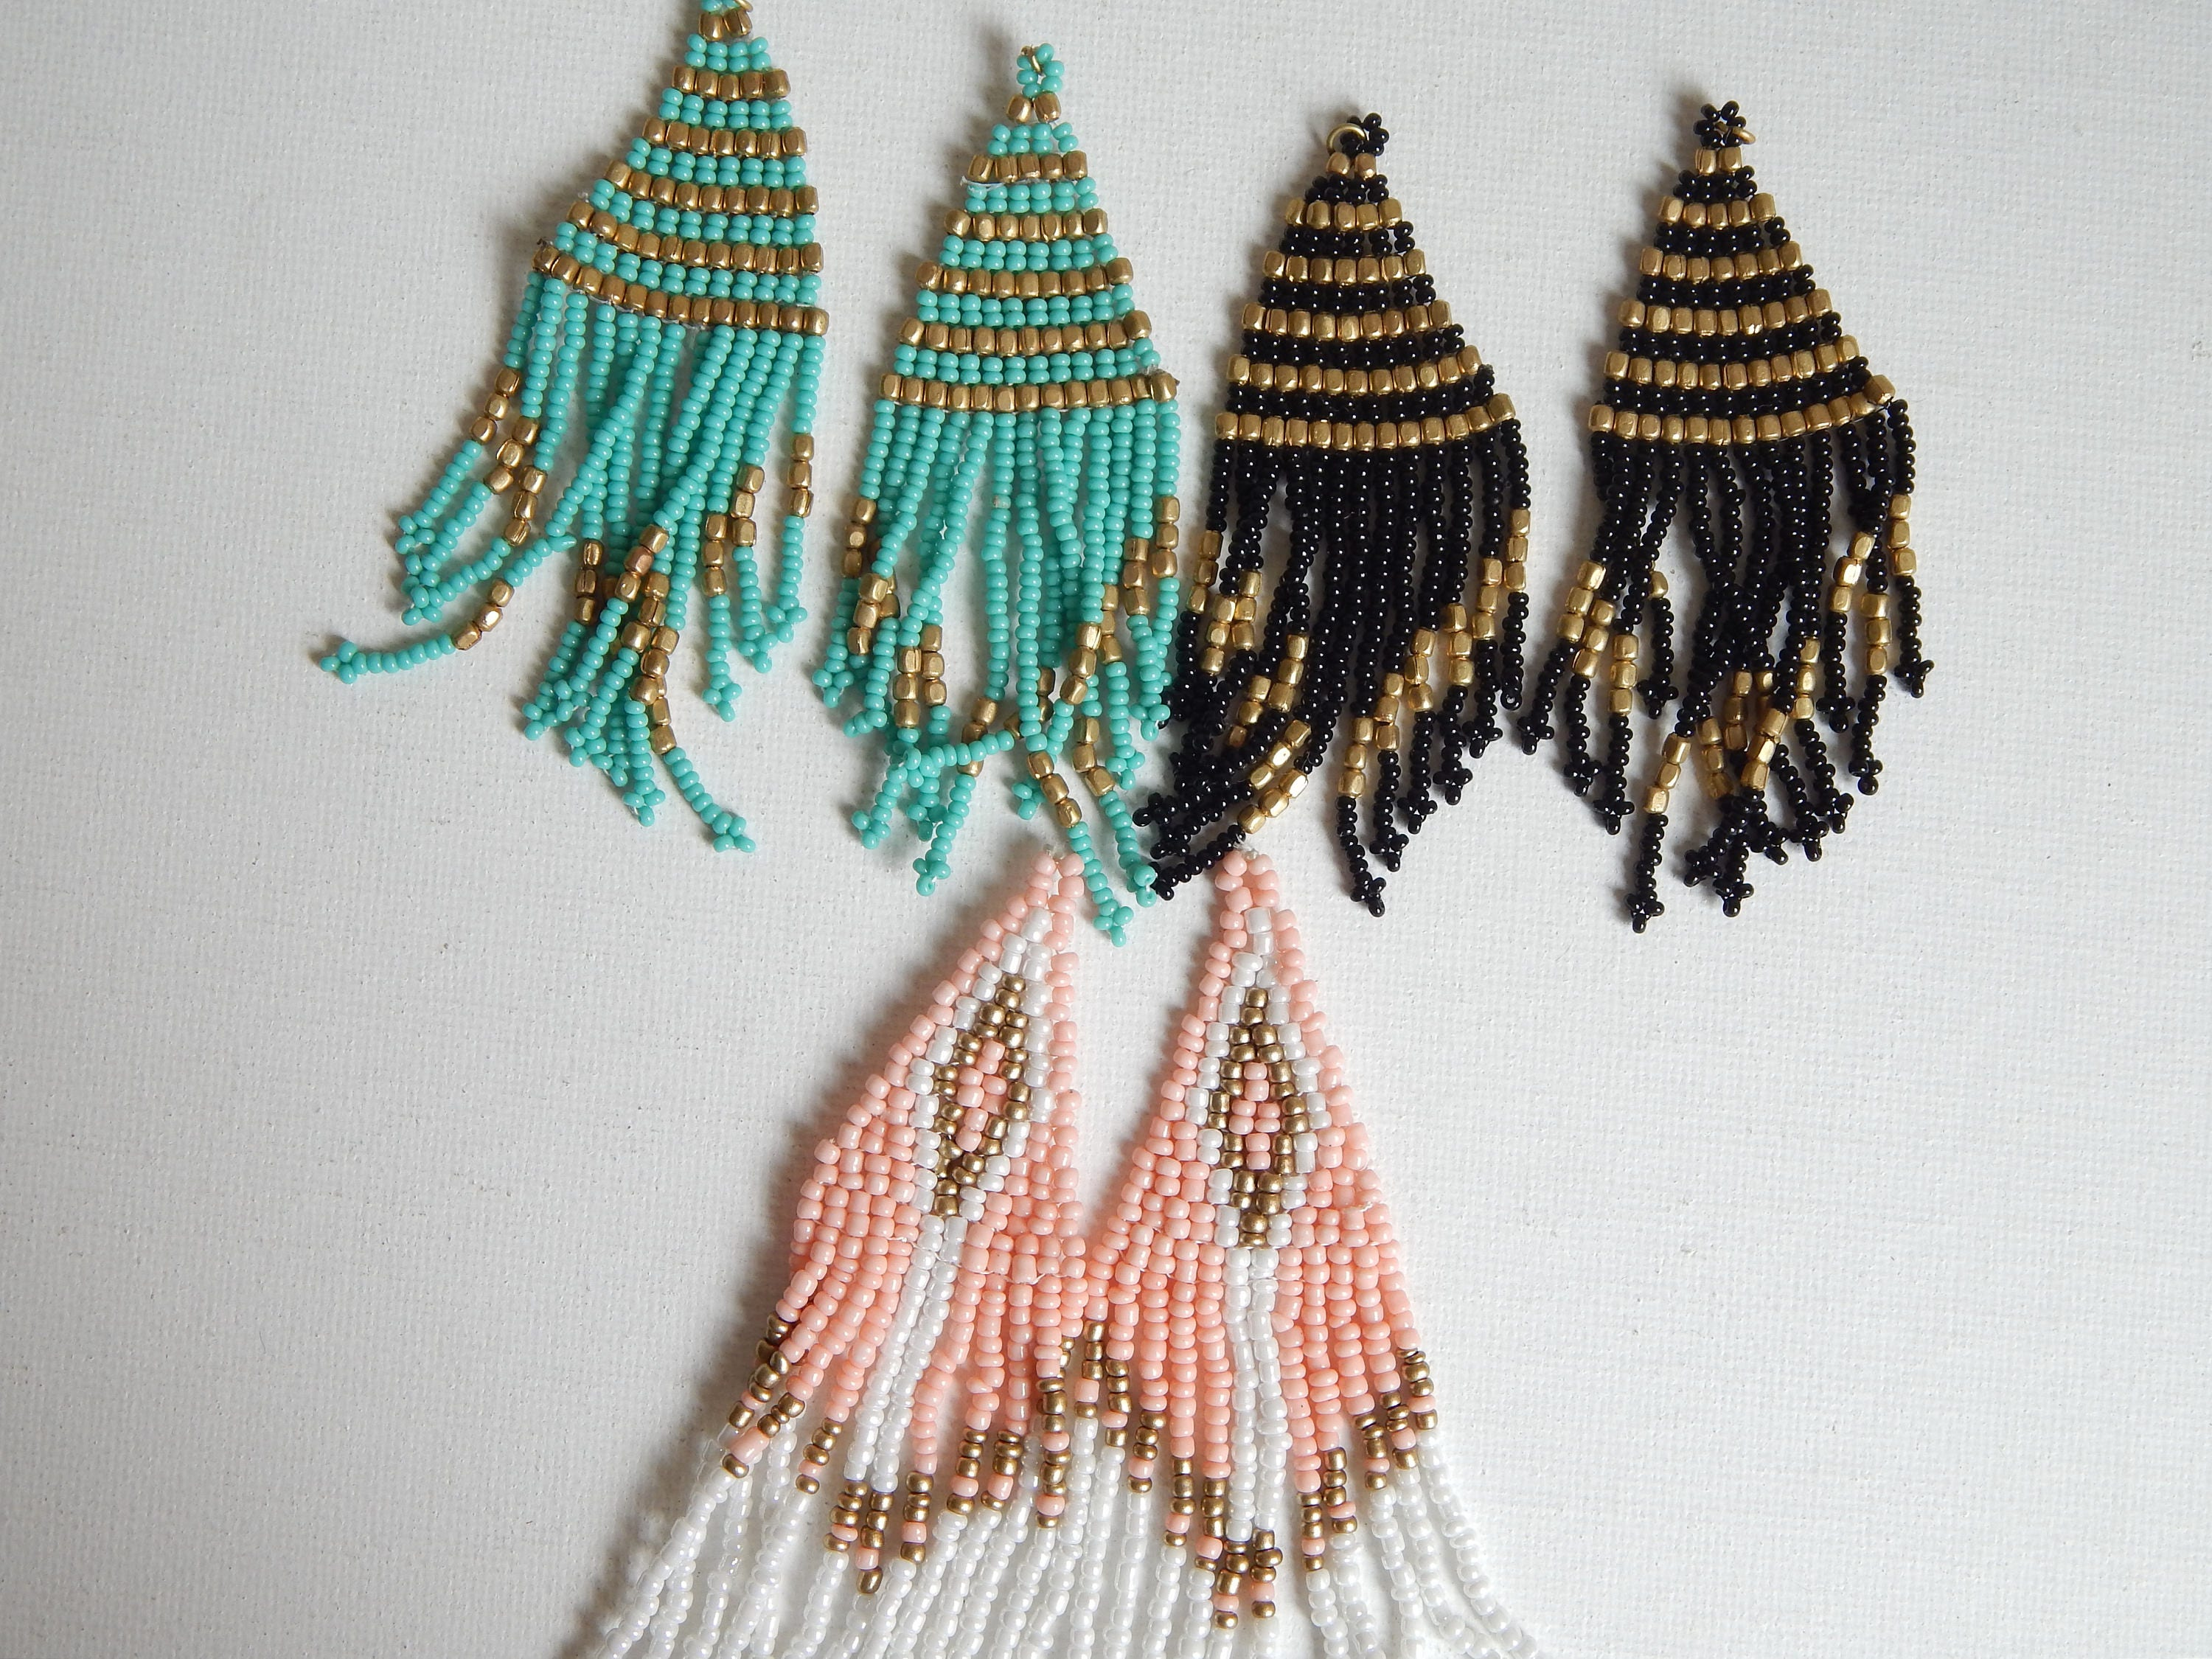 daria crystals jules gold earrings smith with plated chain products drop fringe